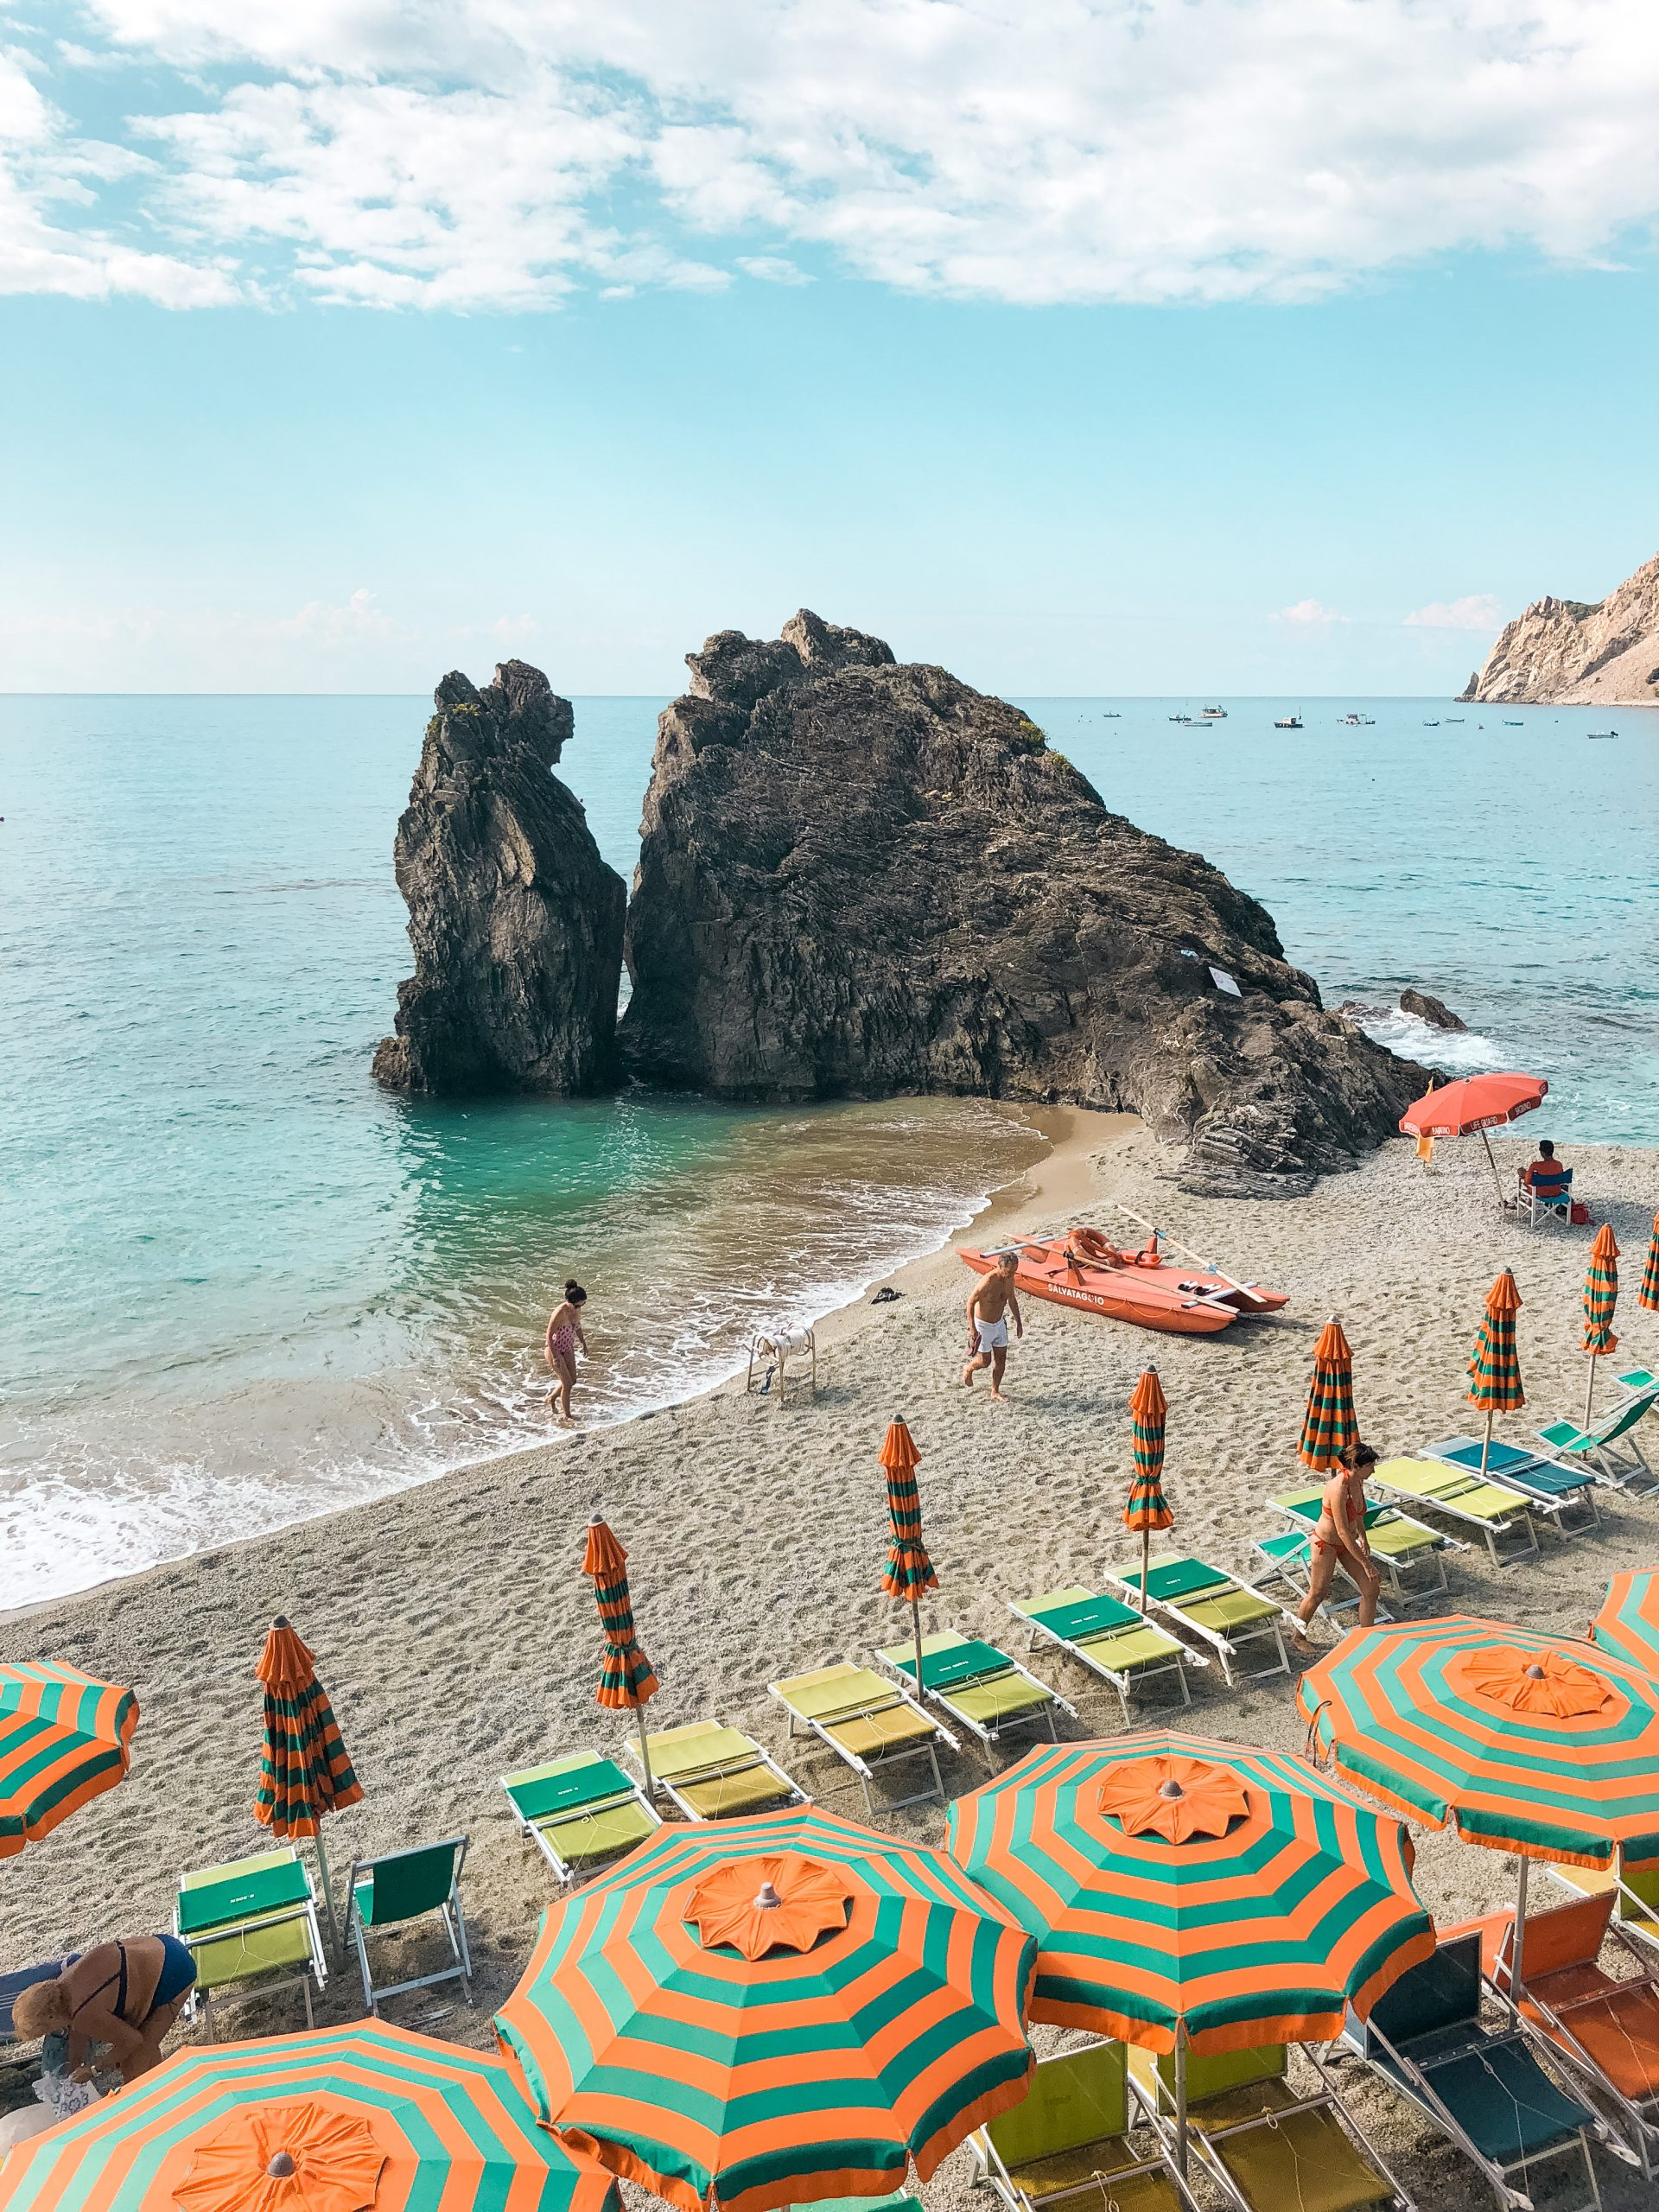 the beach at Monterosso al Mar with orange and teal umbrellas all along the beachside